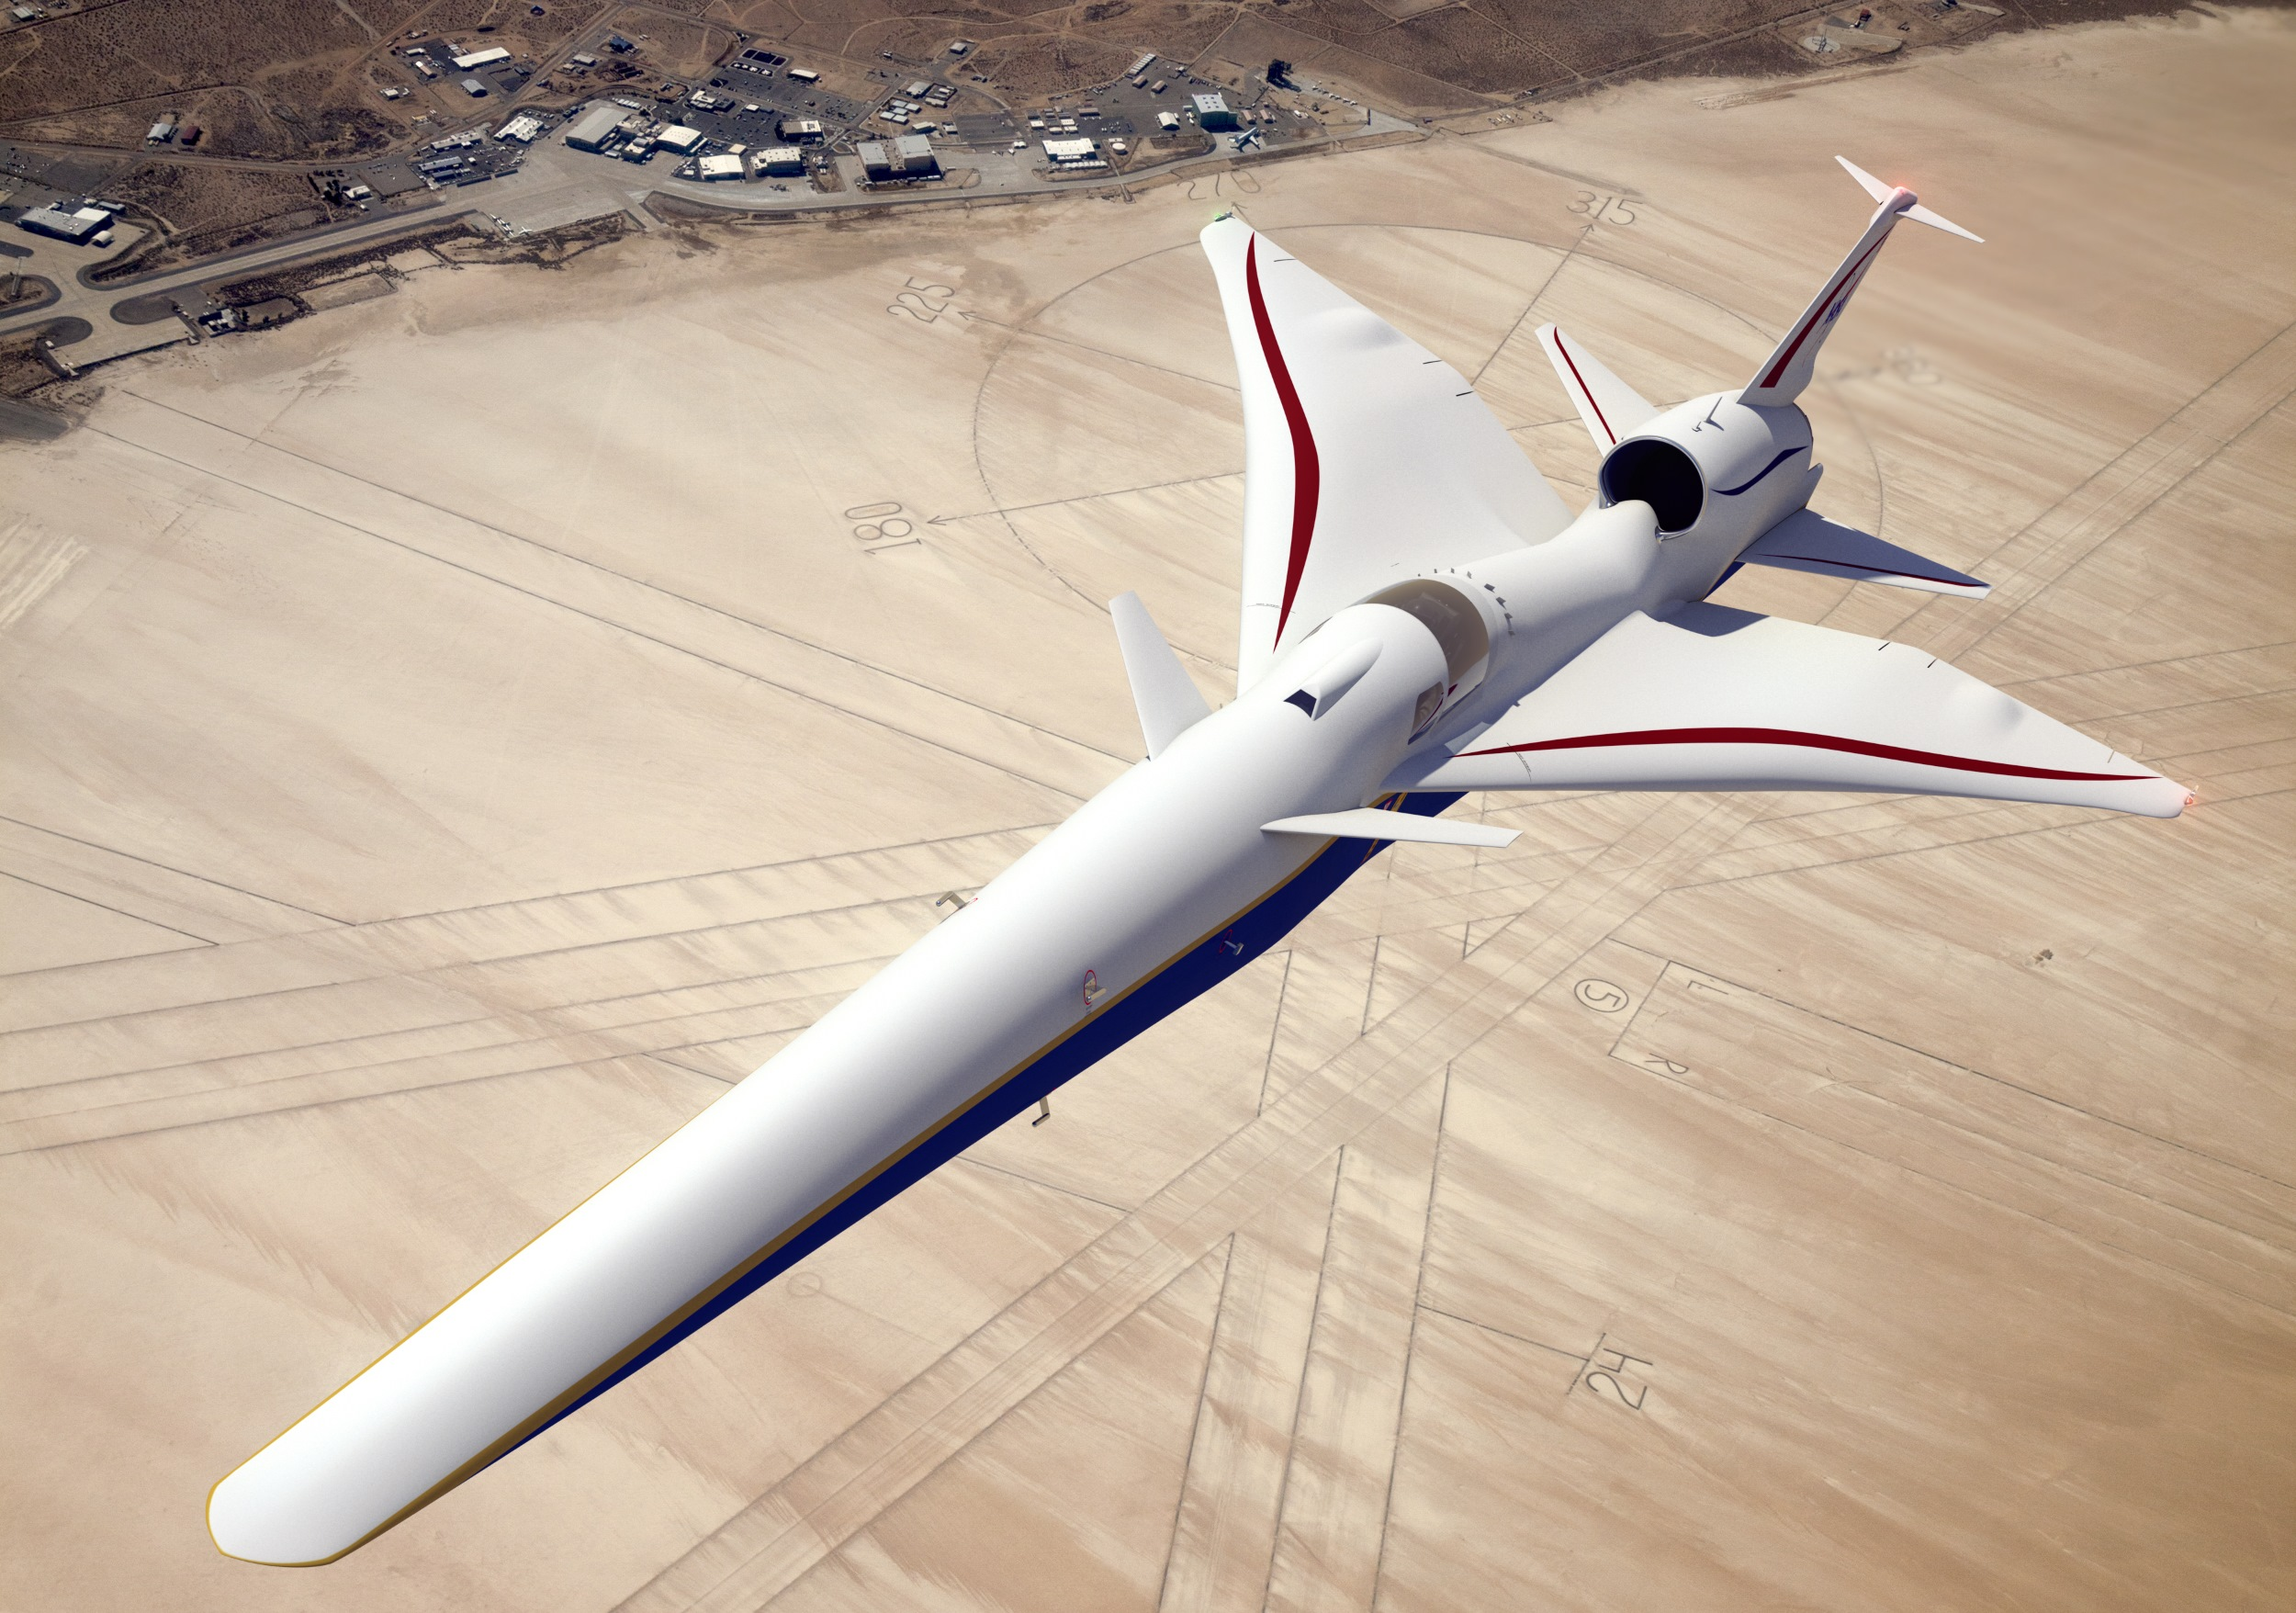 NASA's X-59 supersonic jet will have a 4K TV instead of a forward window